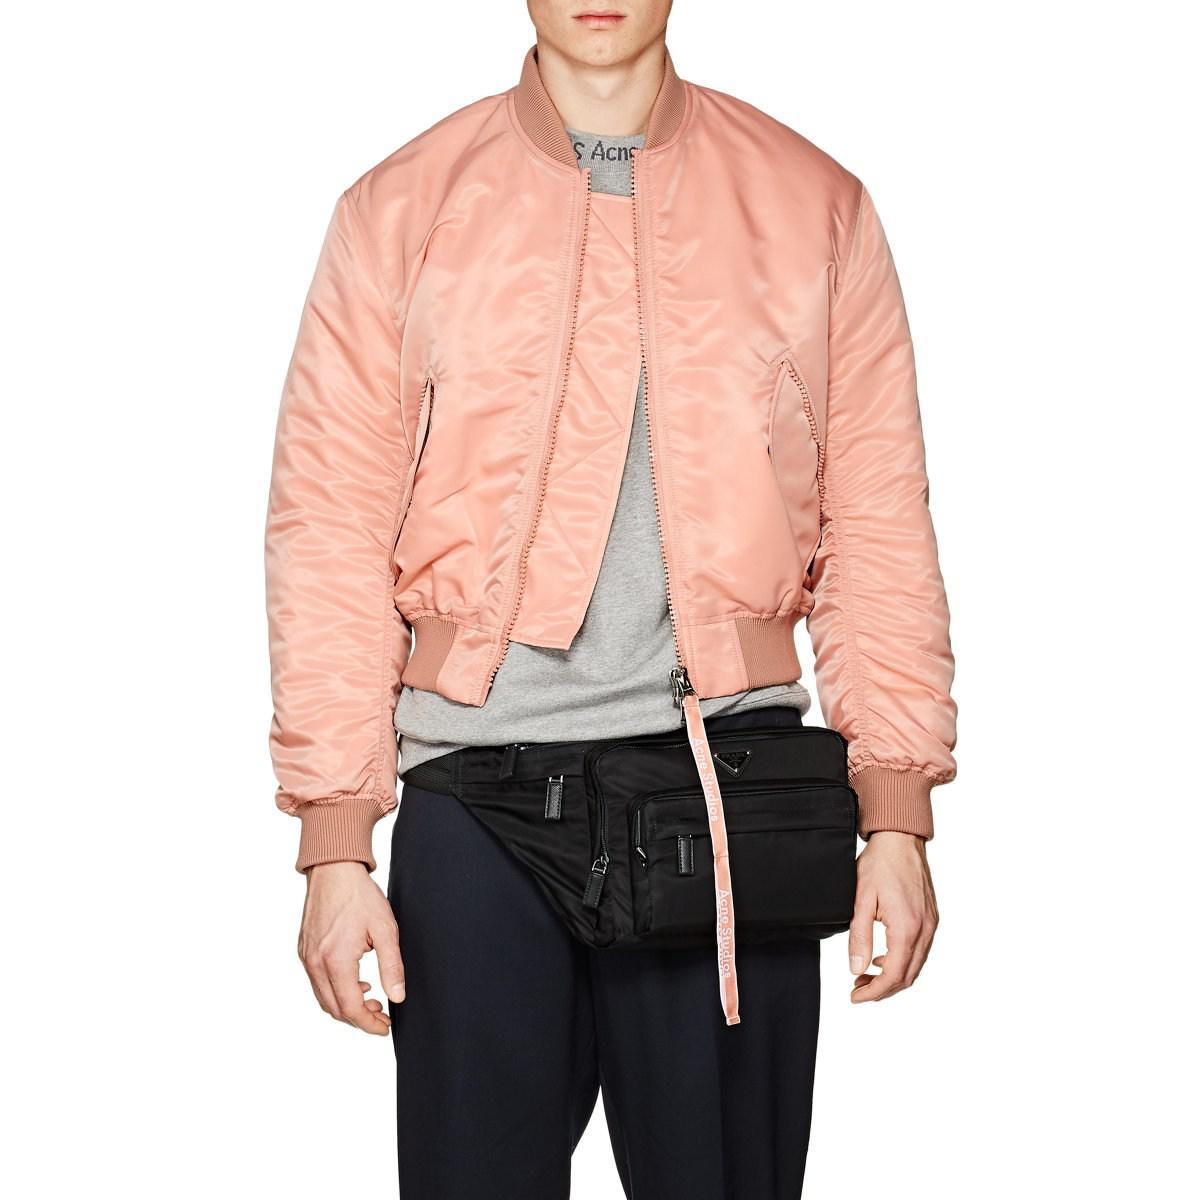 6fc8a97bb Acne Studios Clea Tech Bomber Jacket in Pink for Men - Lyst